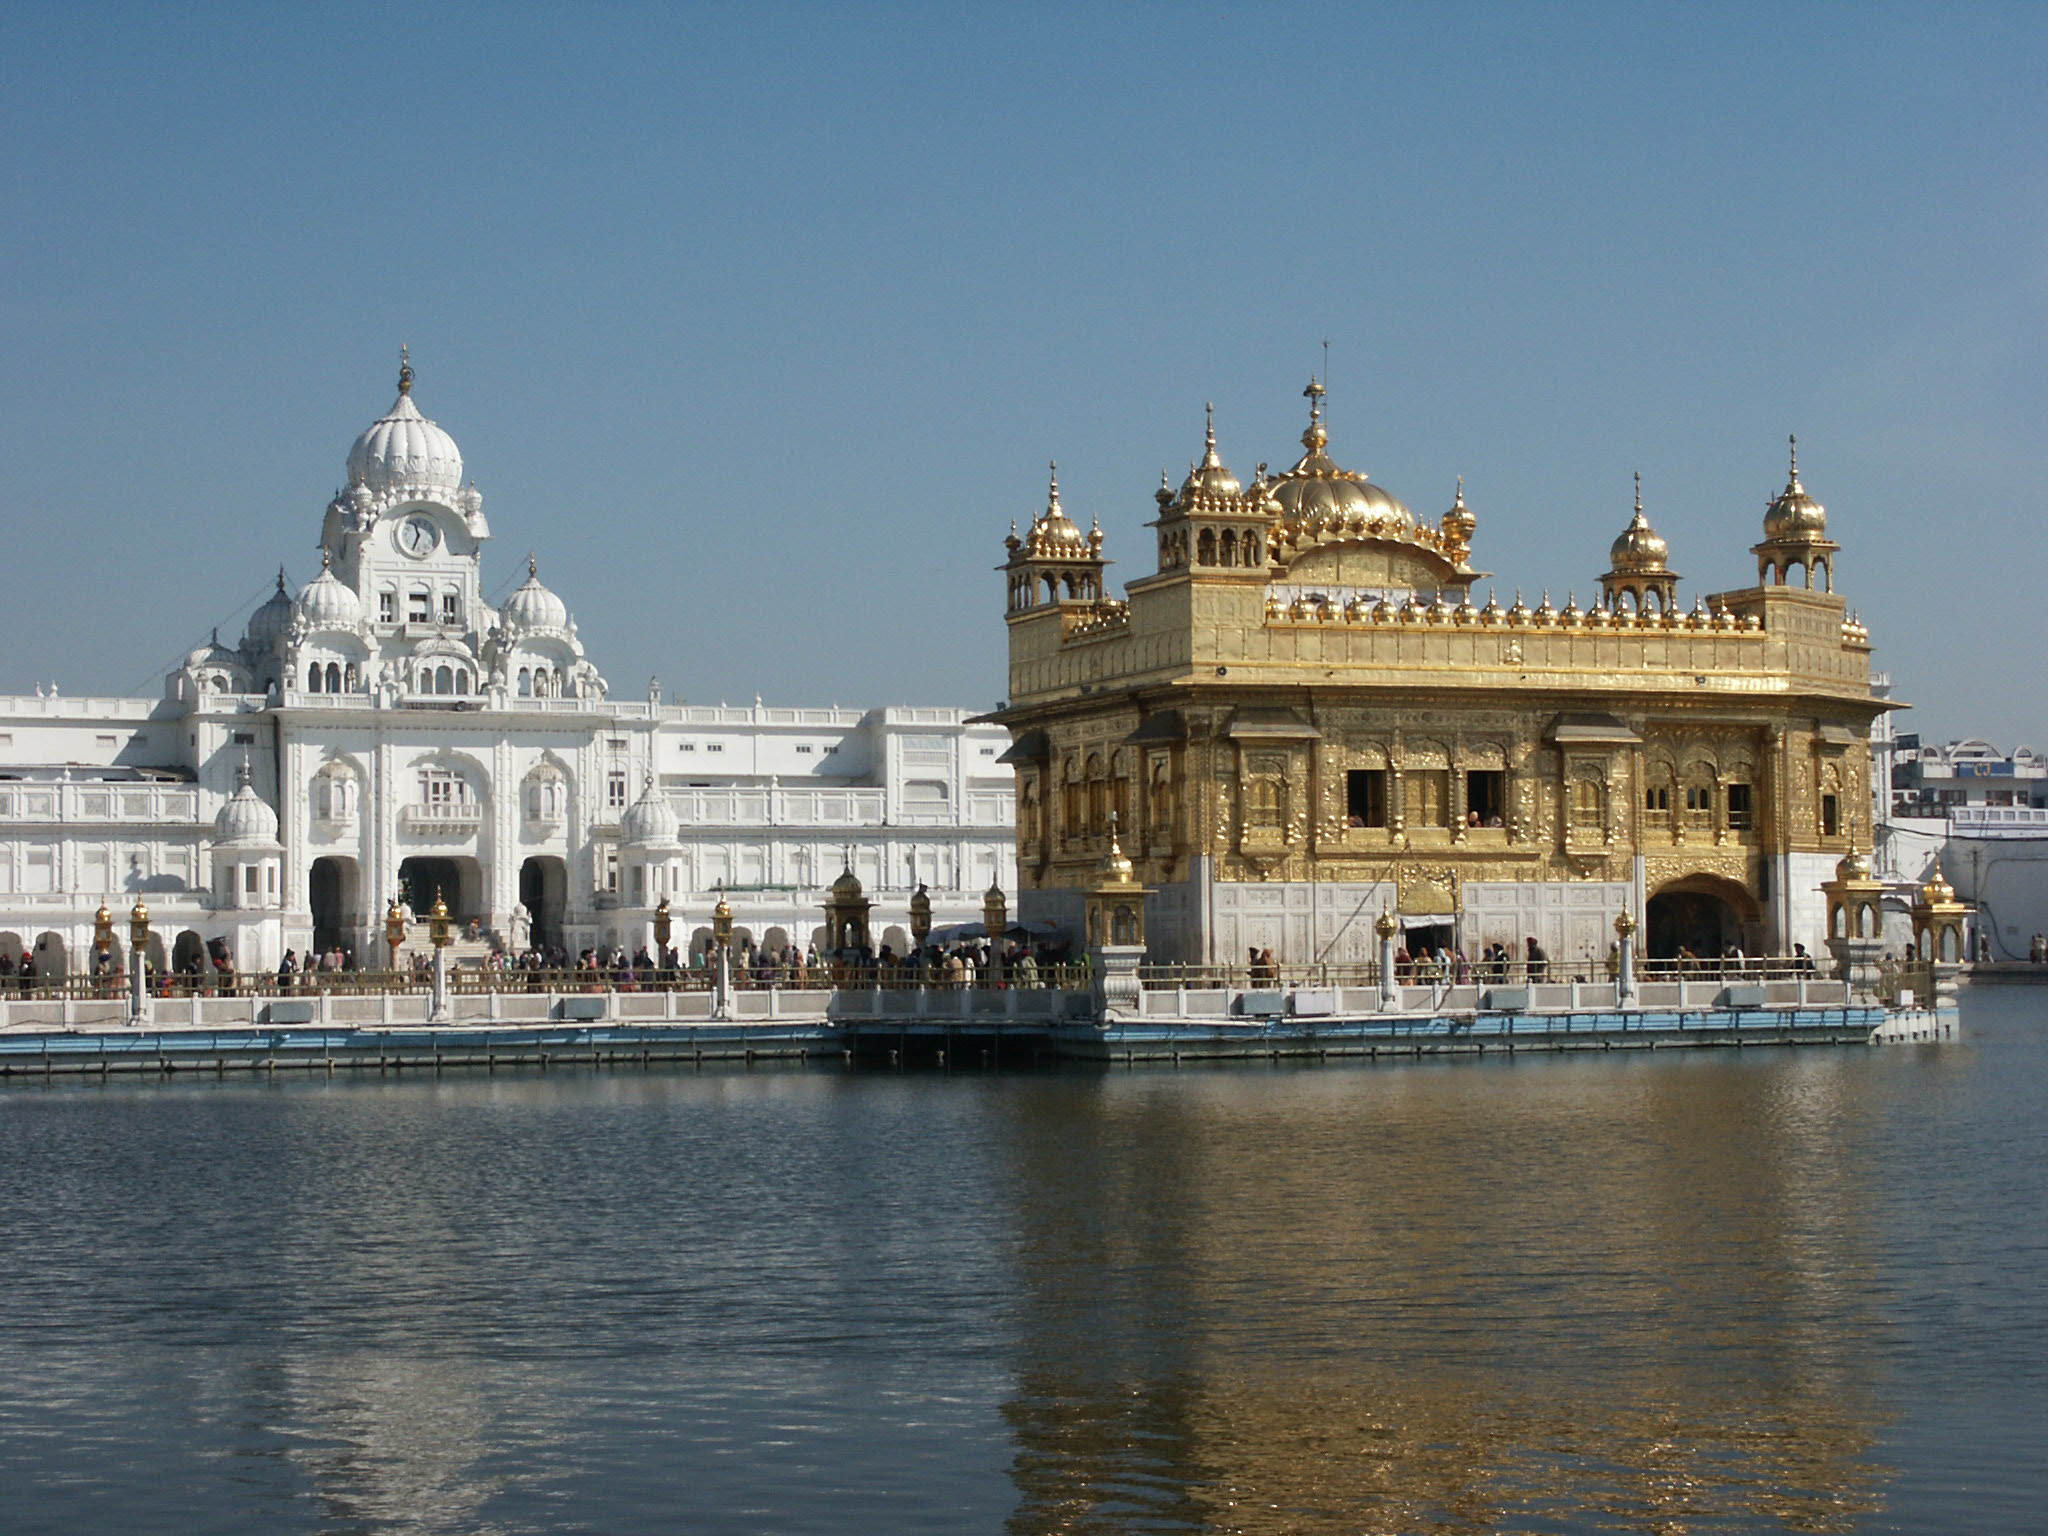 Amritsar India  city photos gallery : Golden Temple, Amritsar, India | Rajinder Banga's Photo Blog